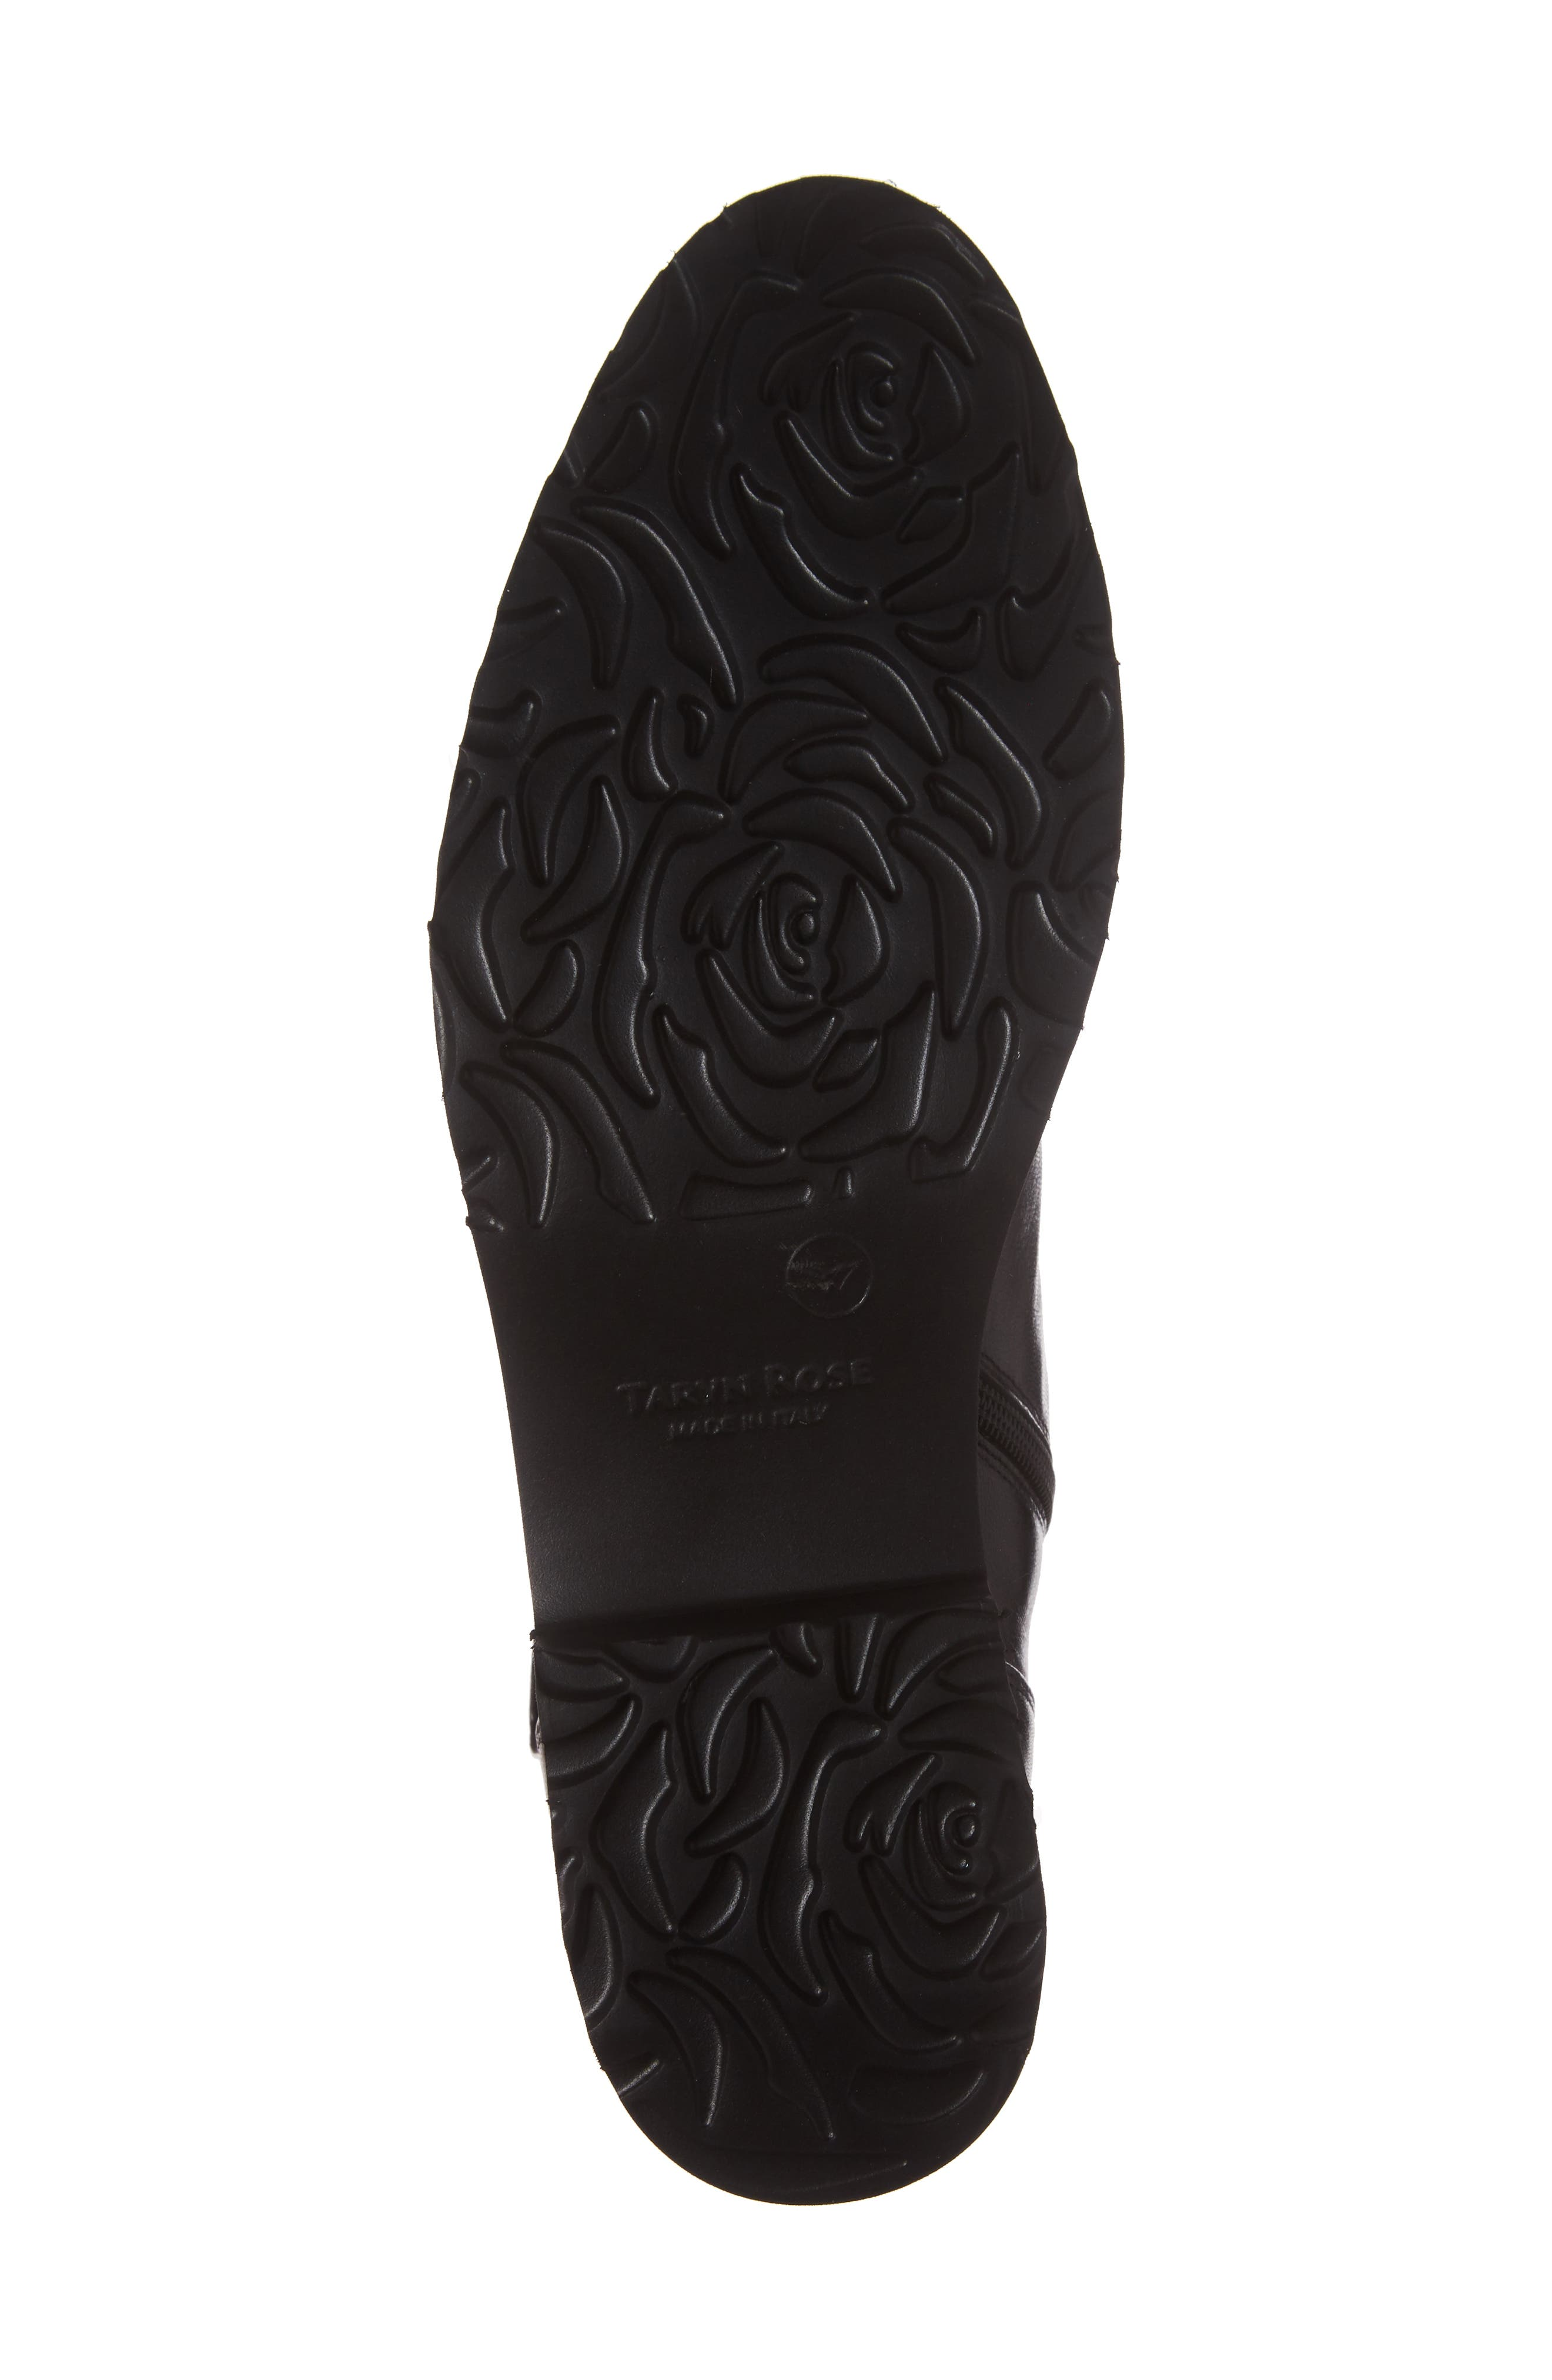 Valentina Rose Boot,                             Alternate thumbnail 6, color,                             Black Leather